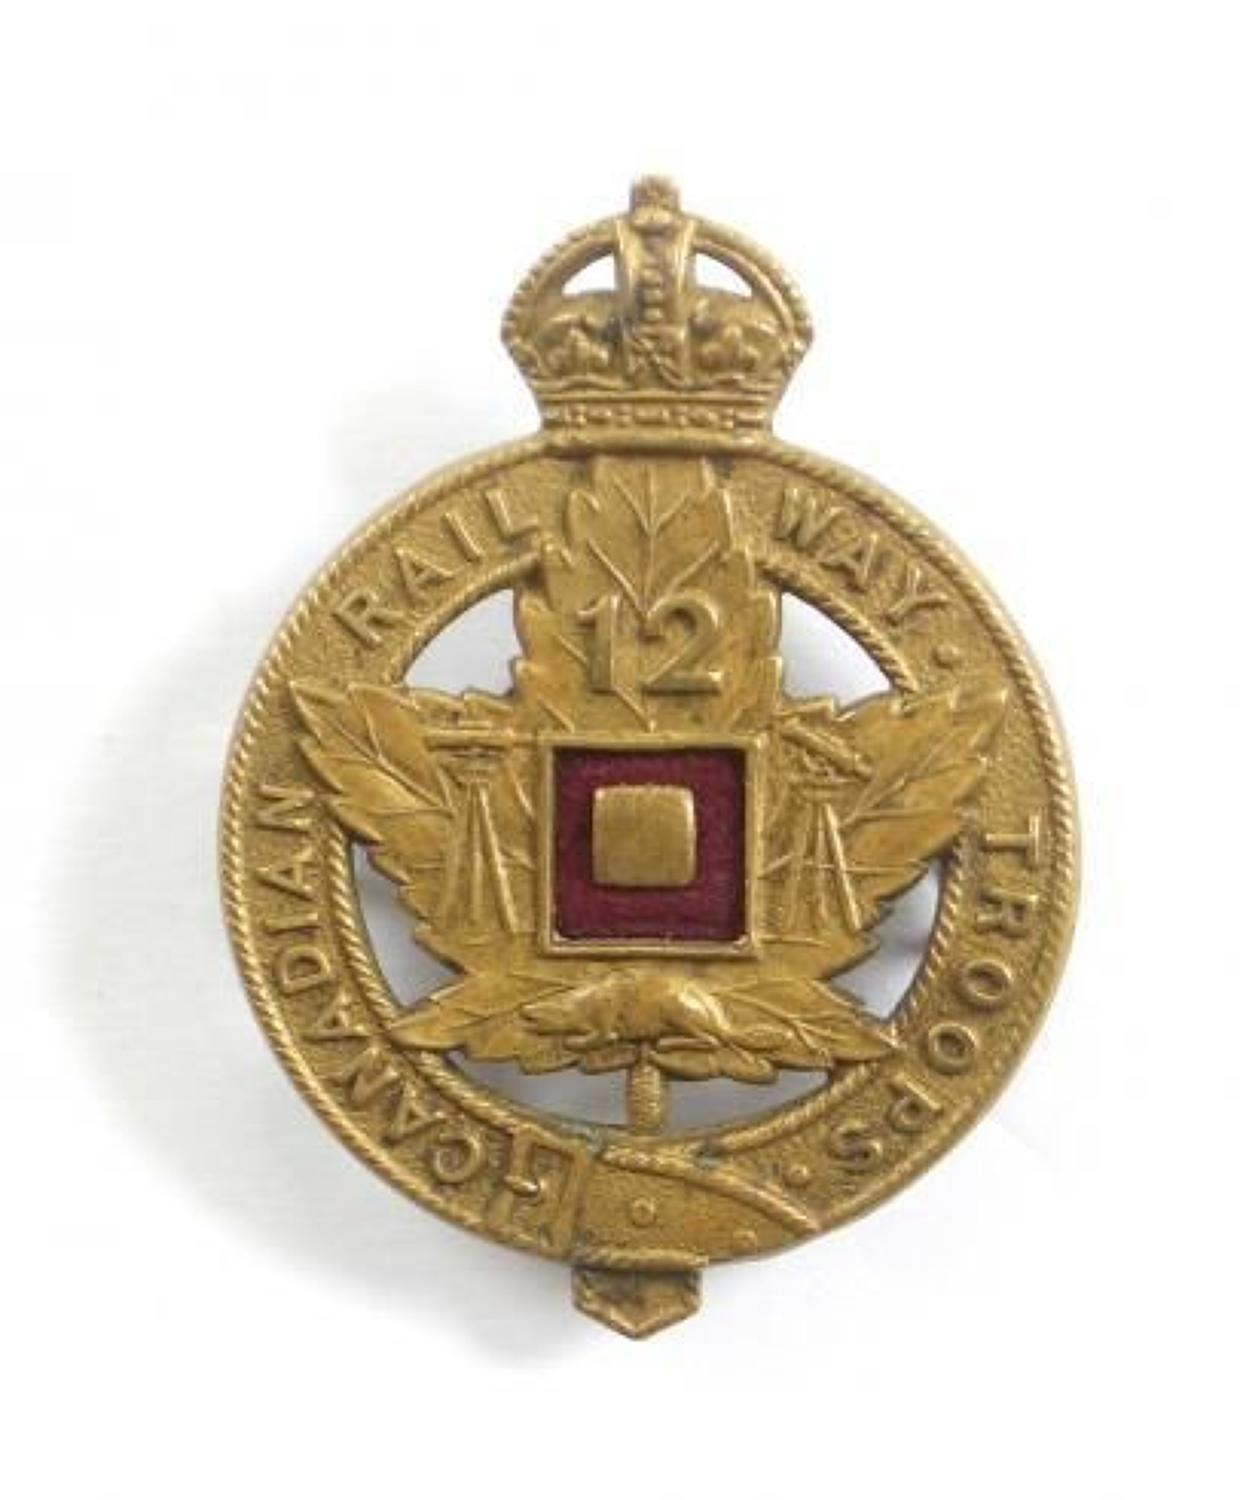 Canadian 12th Railway Troops CEF bronze cap badge by JR Gaunt, London.